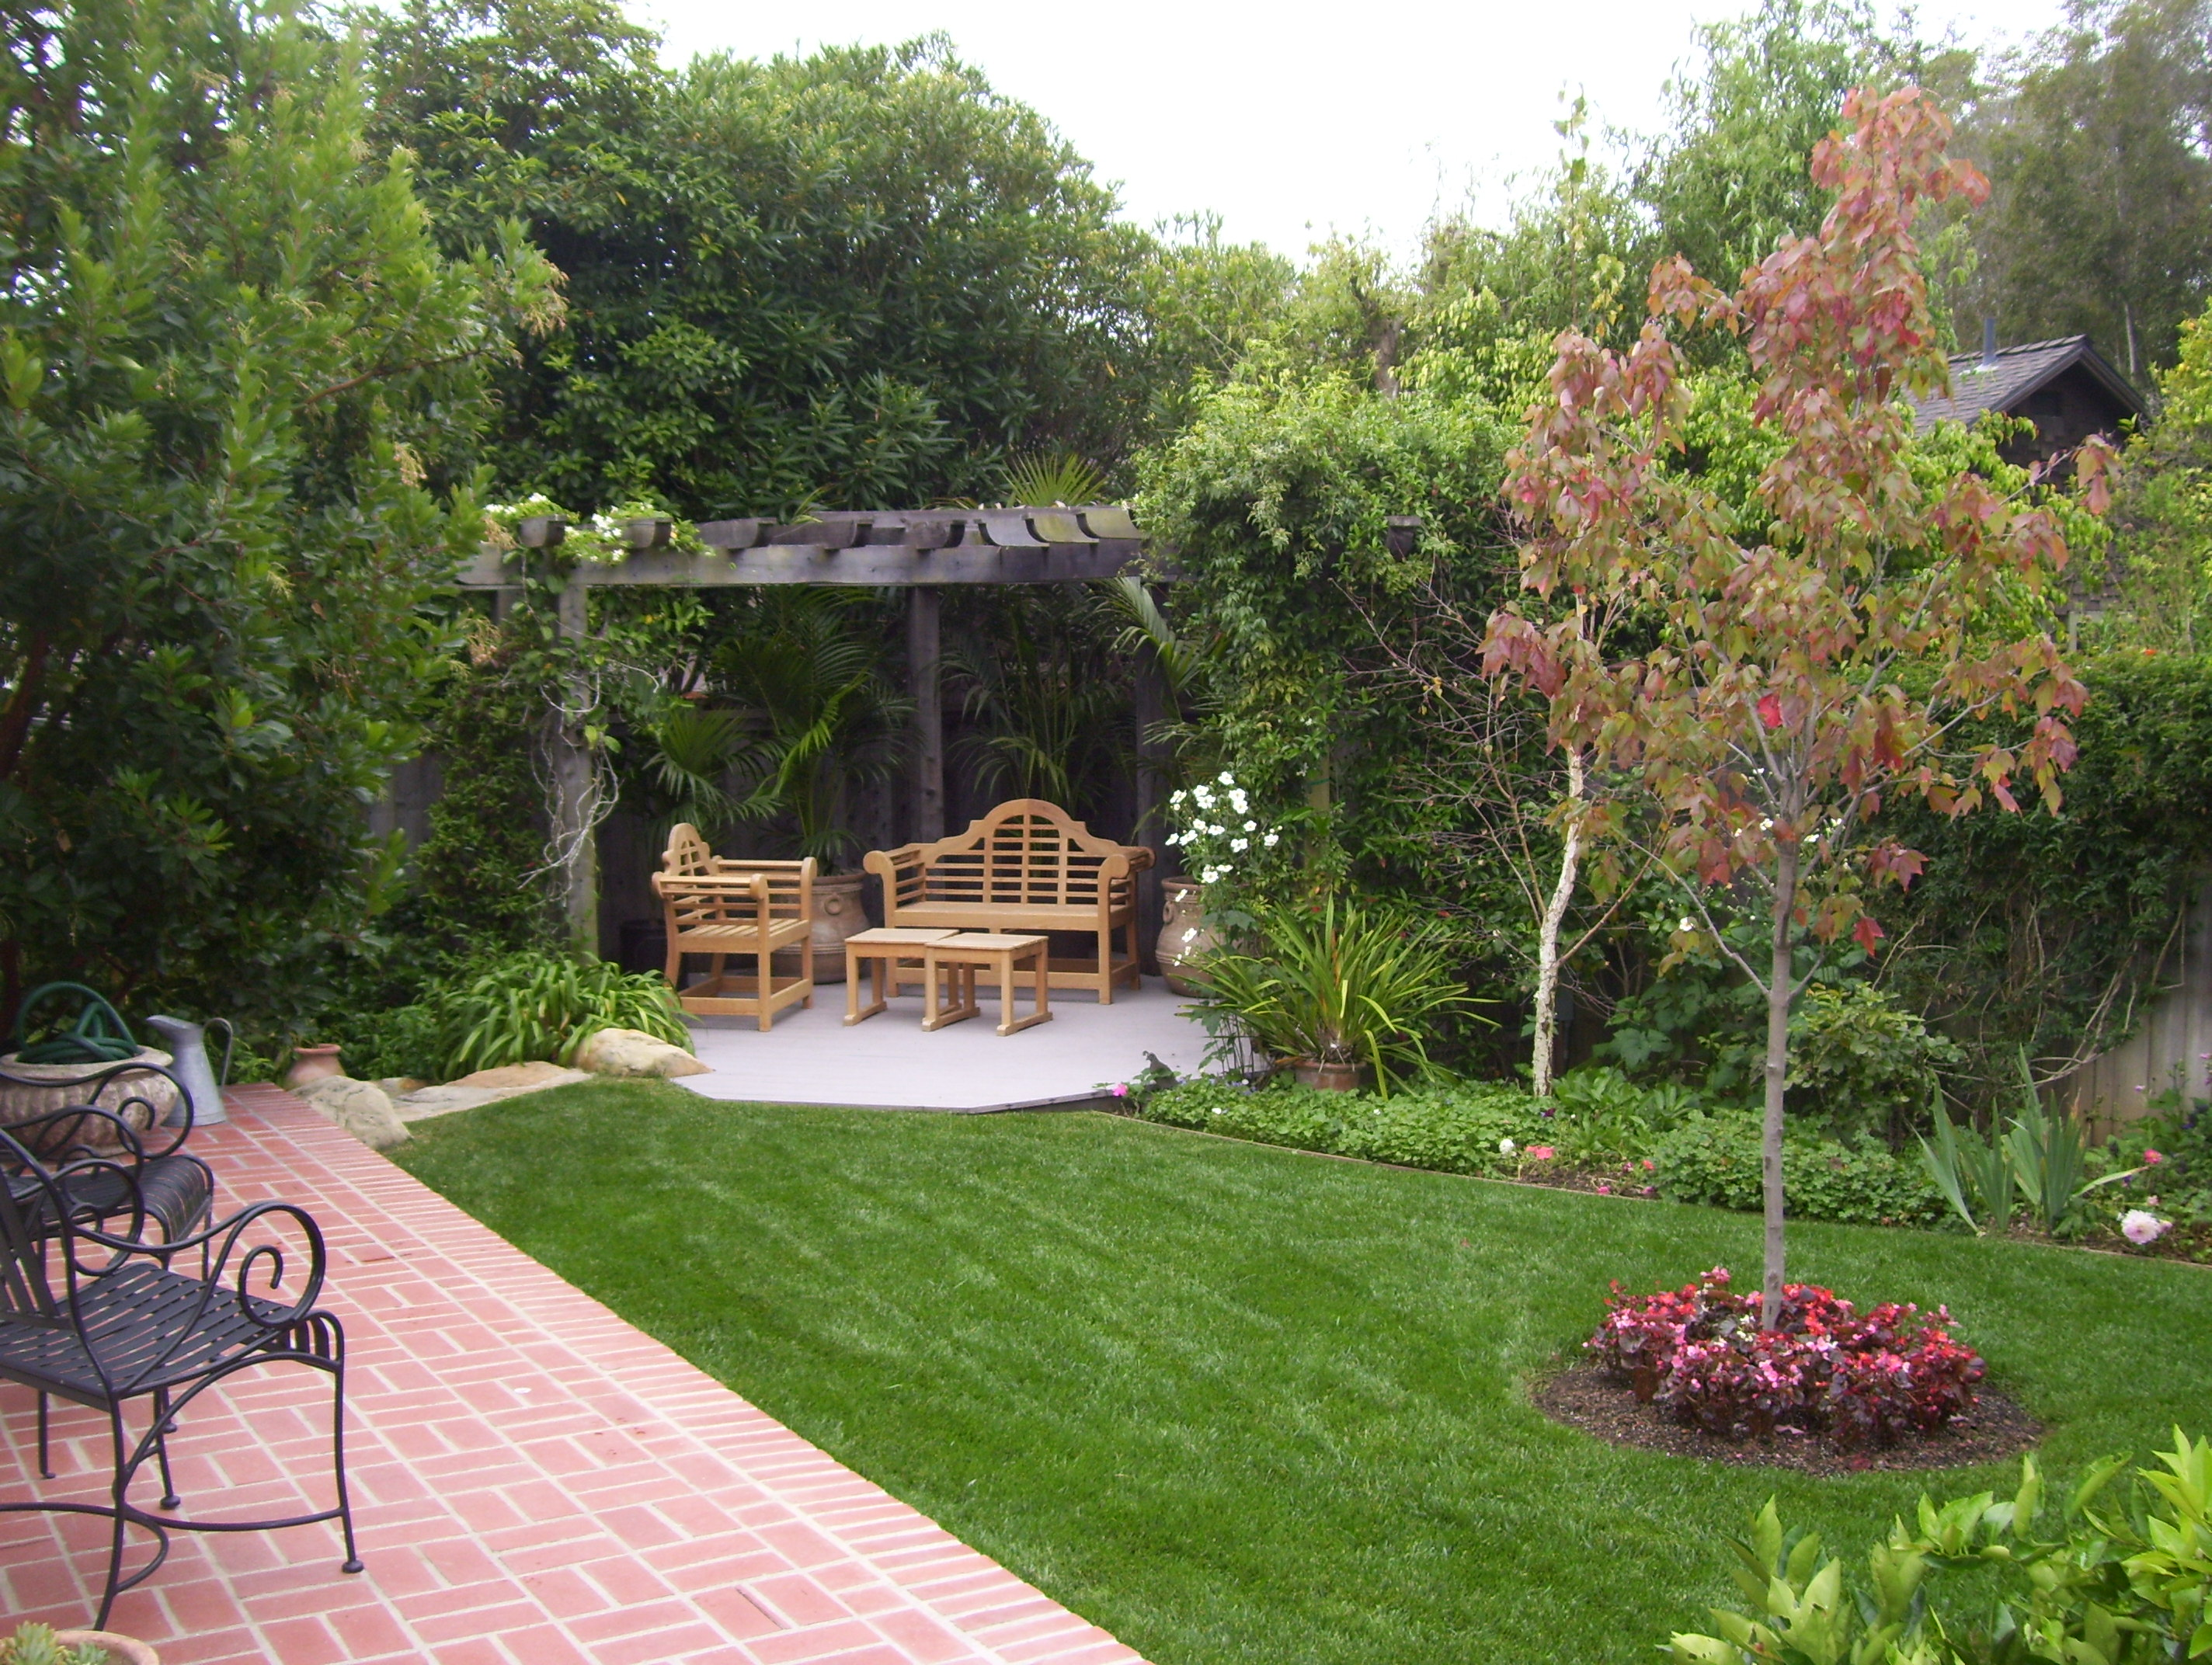 Santa barbara lawn and garden maintenenace landscape for Backyard landscaping ideas